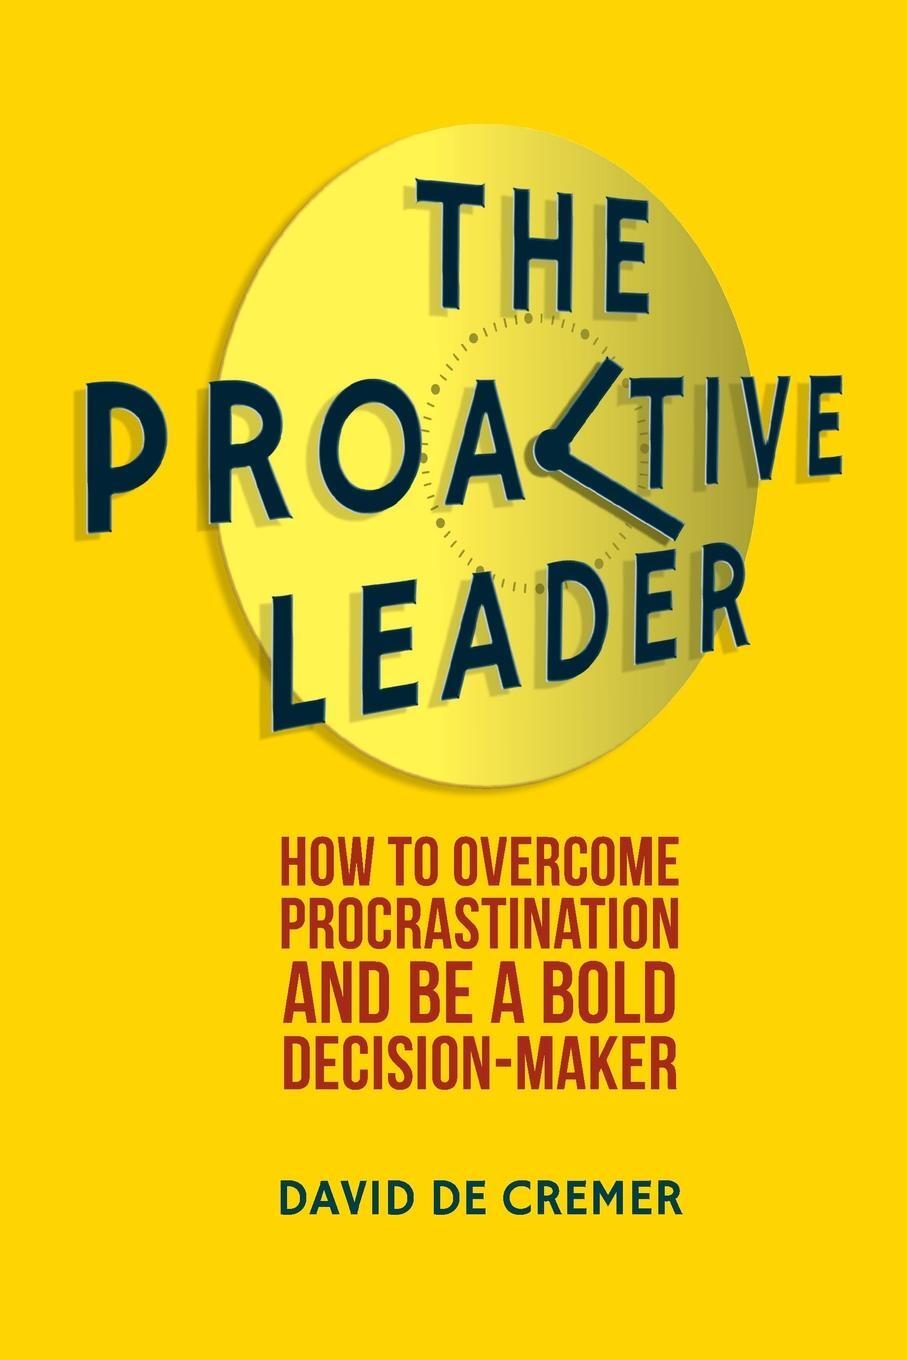 David De Cremer. The Proactive Leader. How To Overcome Procrastination And Be A Bold Decision-Maker